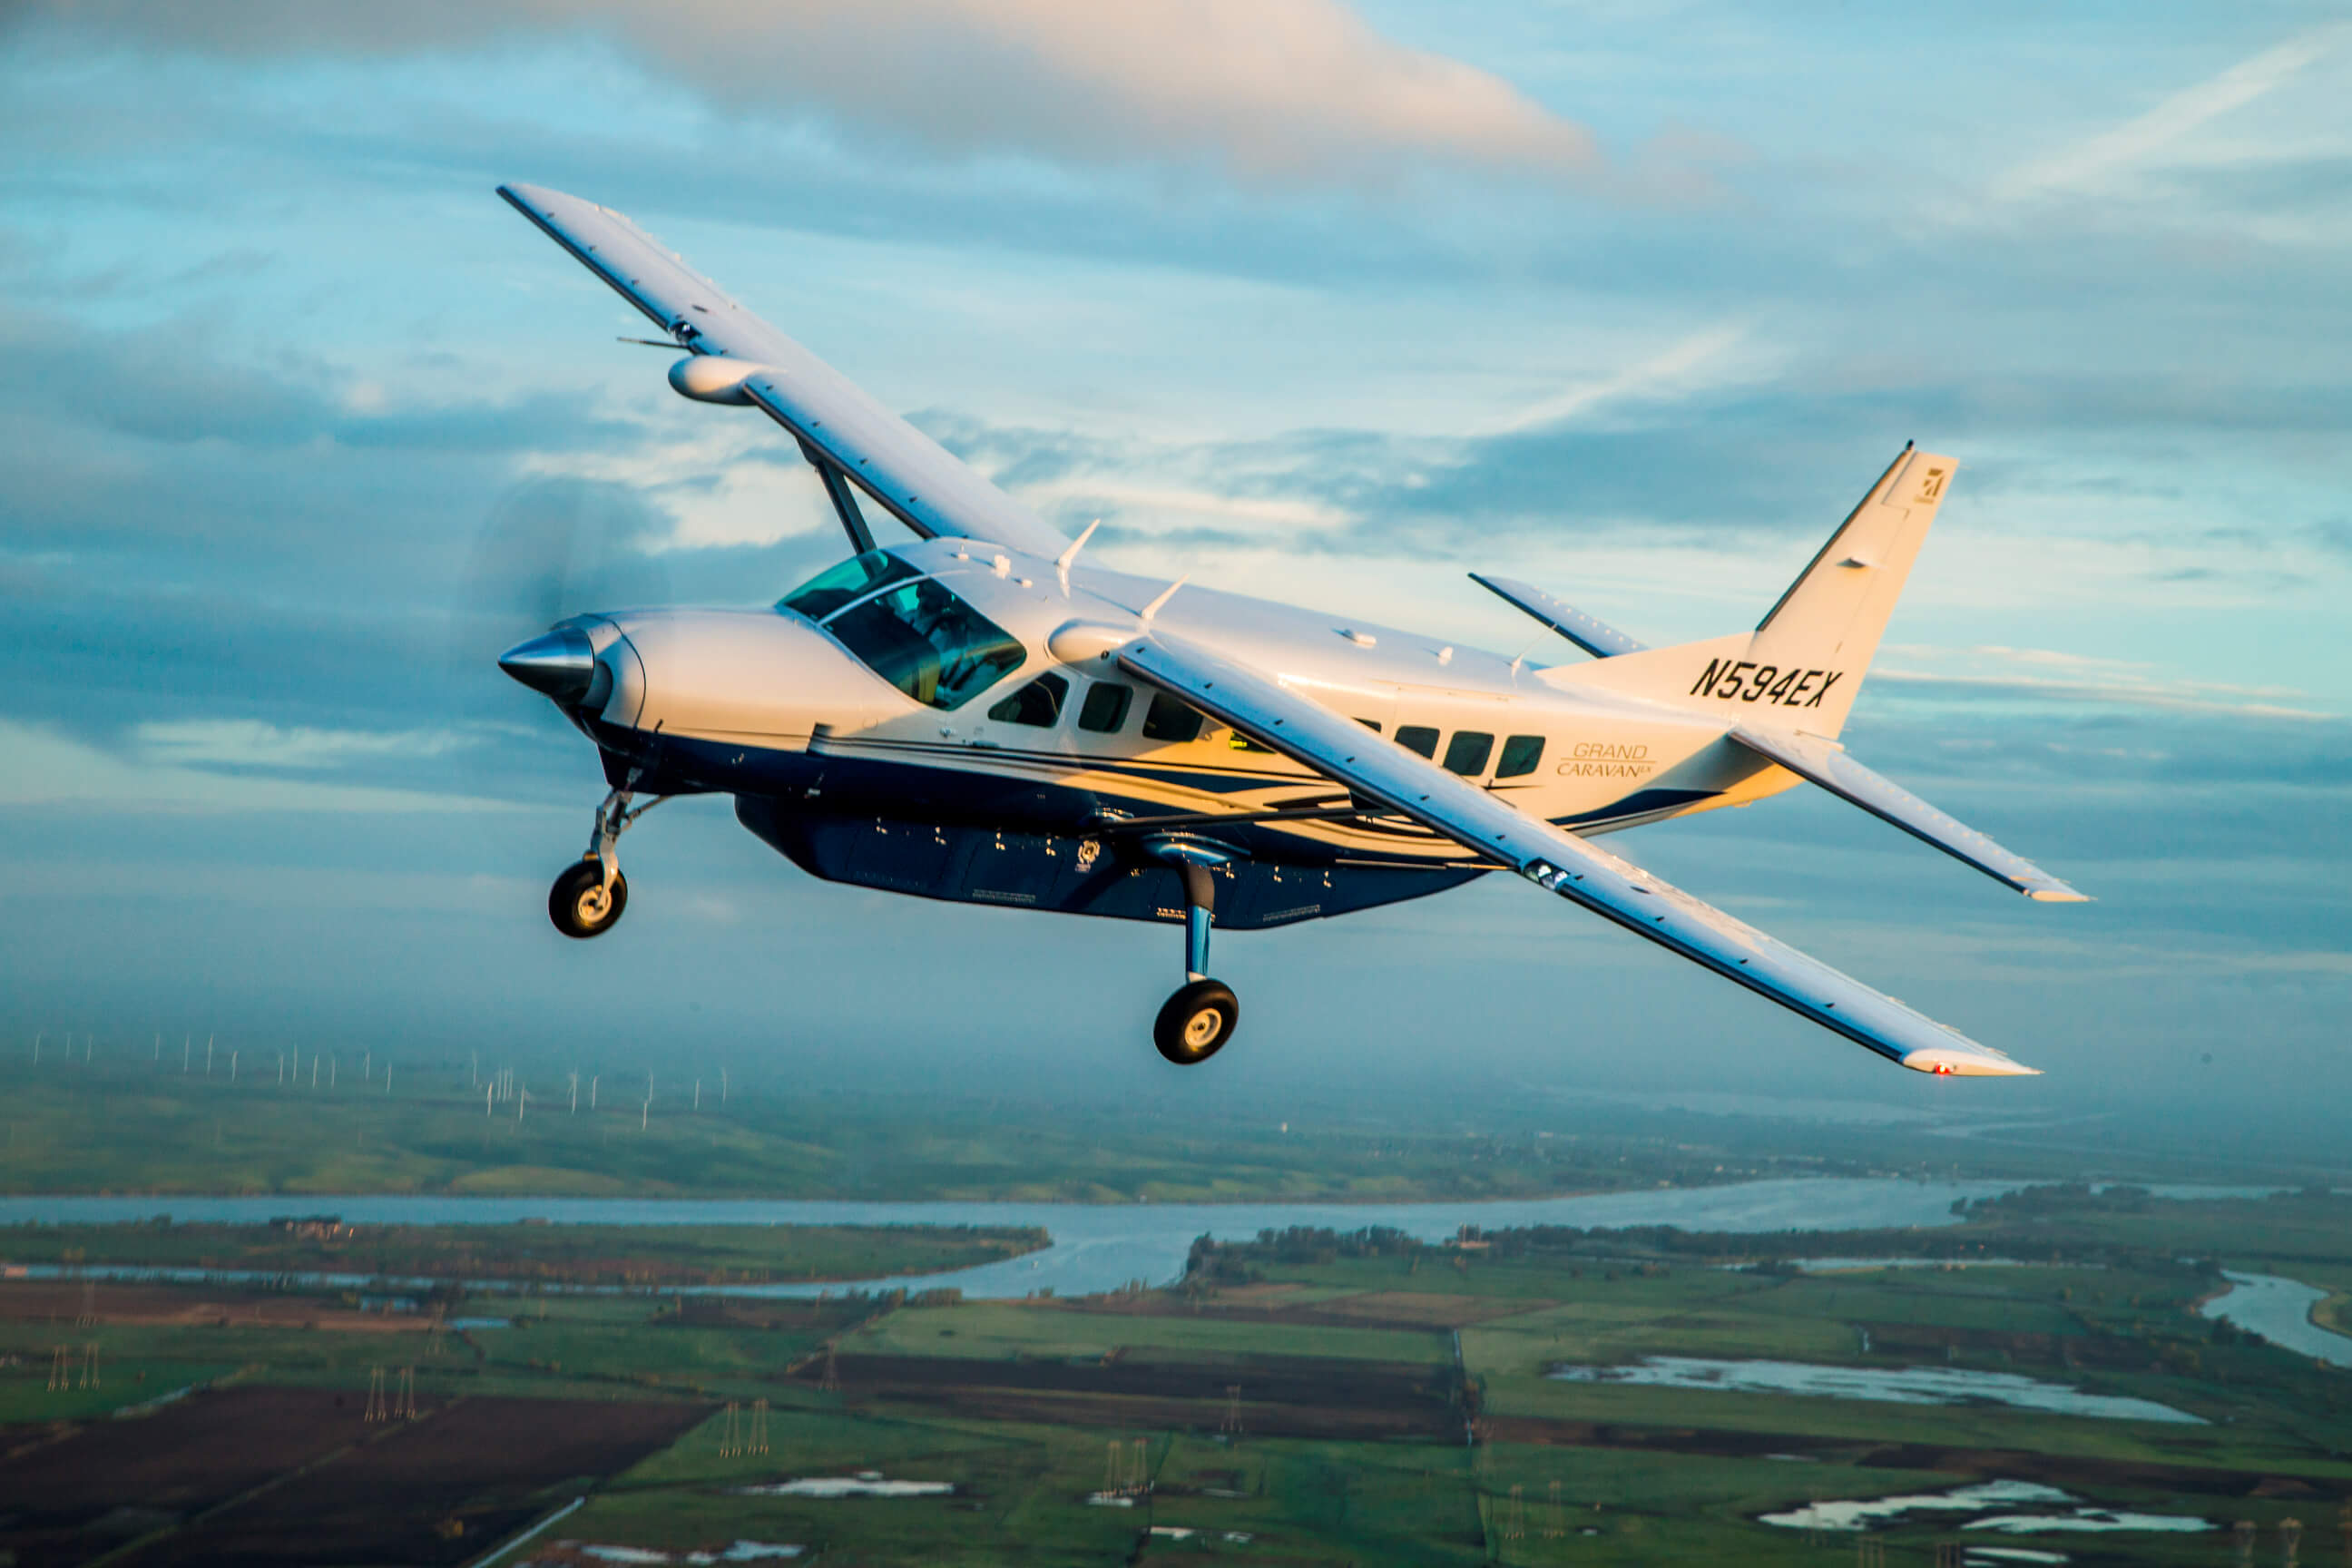 Textron Aviation begins delivery of 10 Cessna Grand Caravan EX turboprops  to support charter service in Botswana